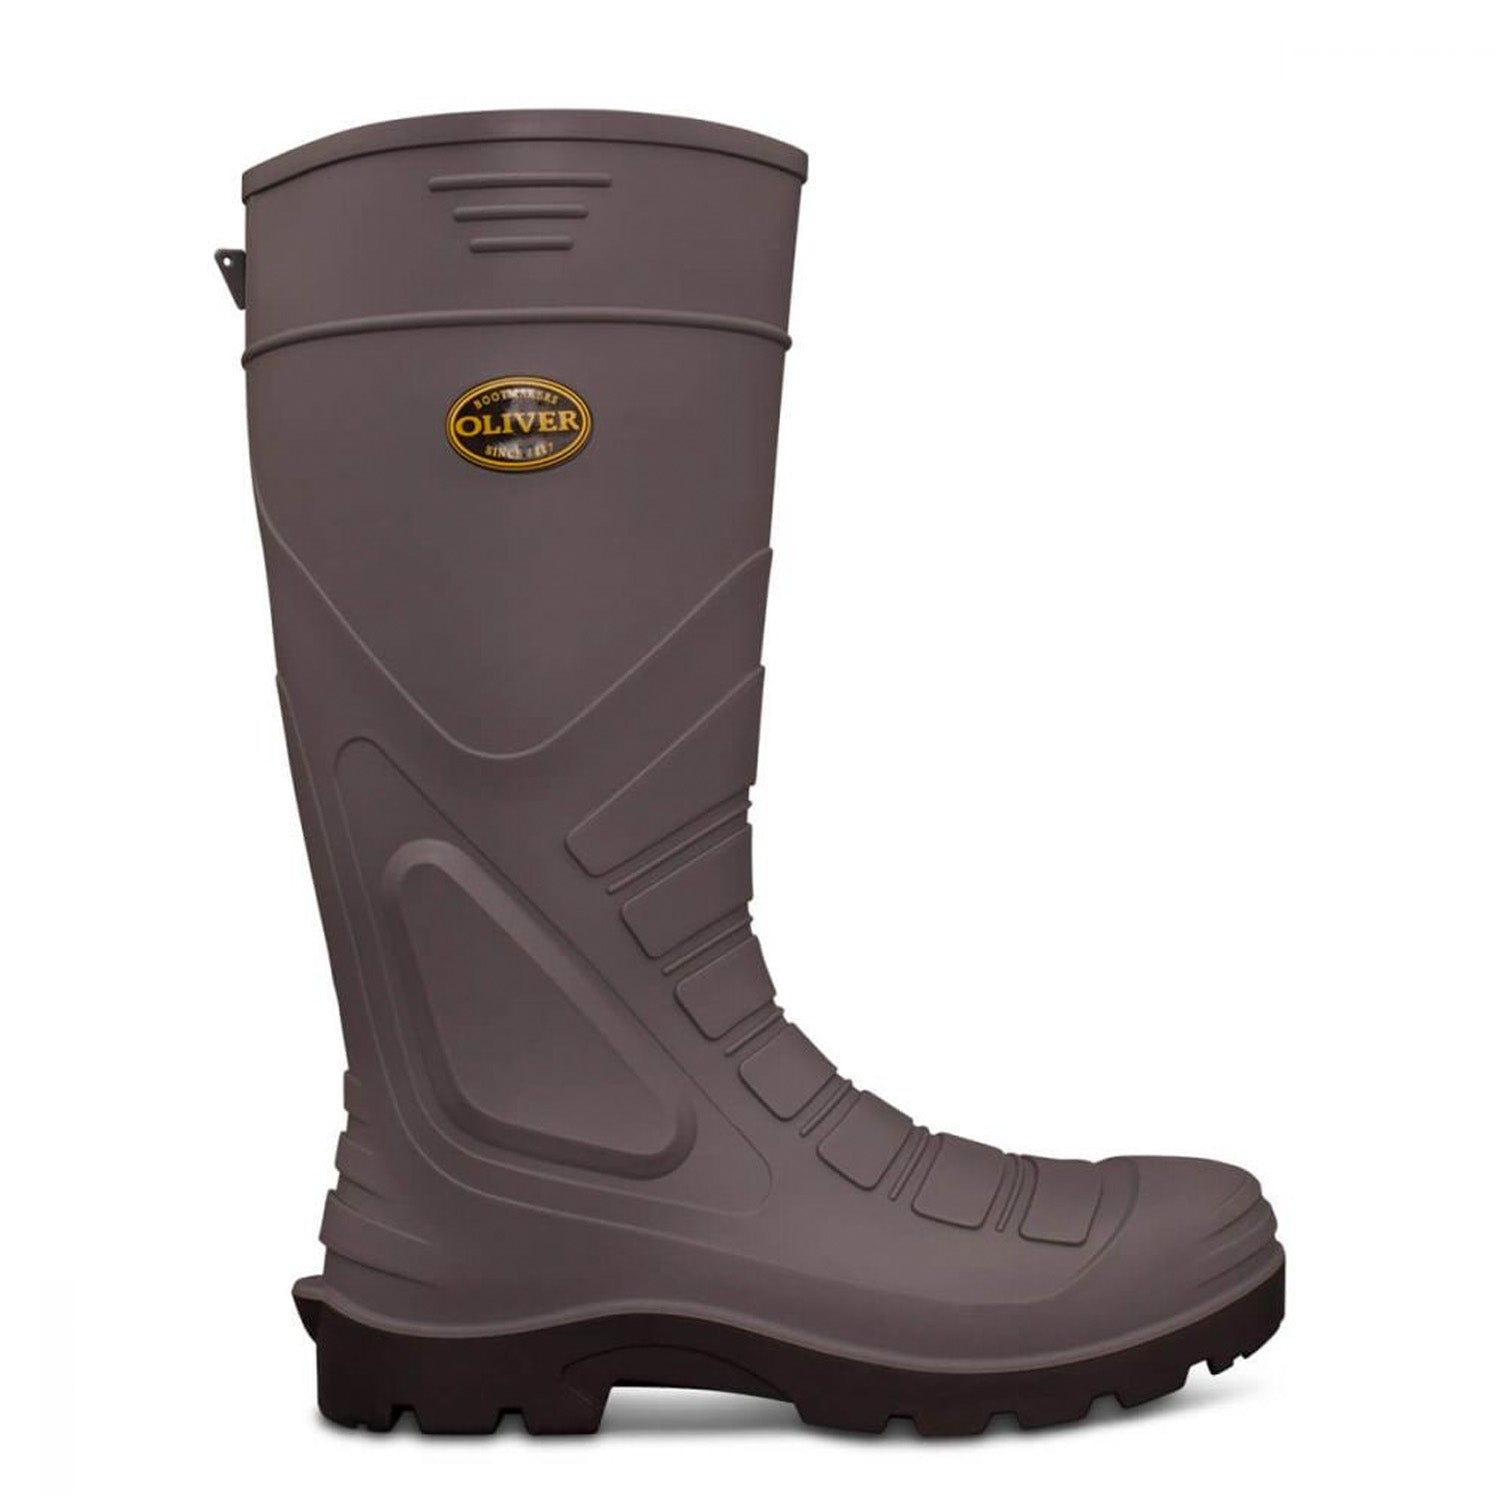 OLIVER SAFETY GUMBOOT - GREY